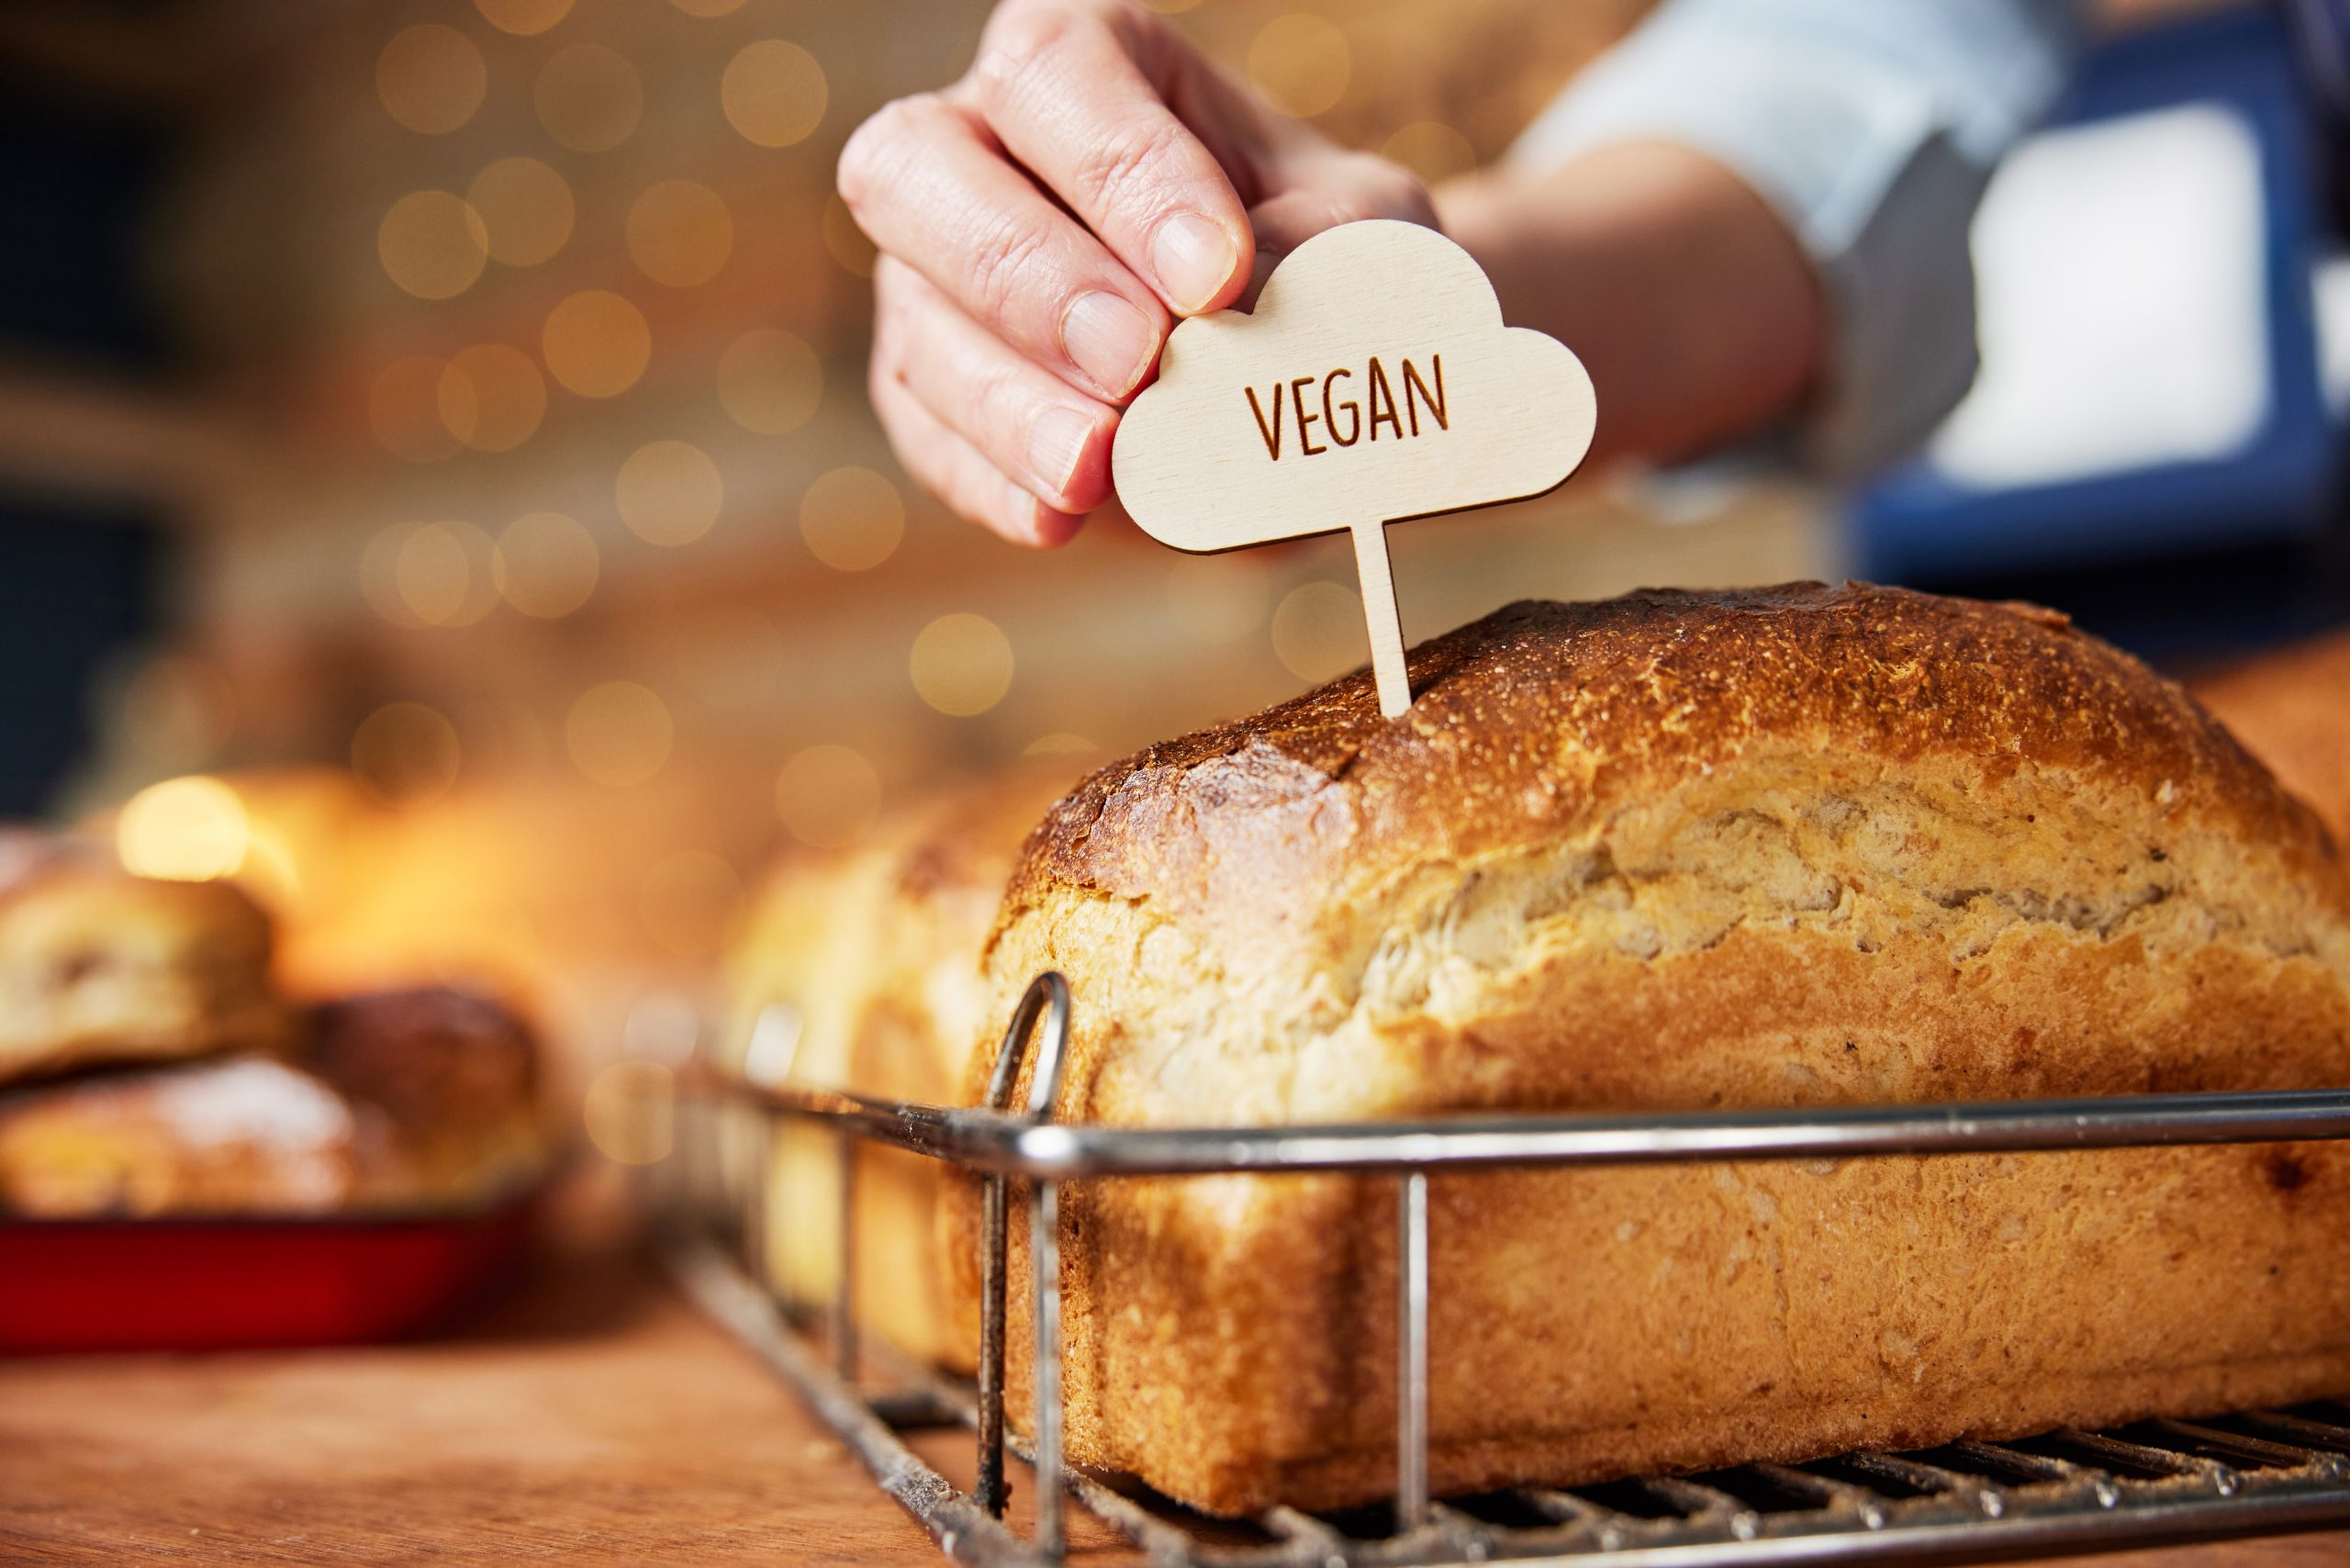 Sales Assistant In Bakery Putting Vegan Label Into Freshly Baked Baked